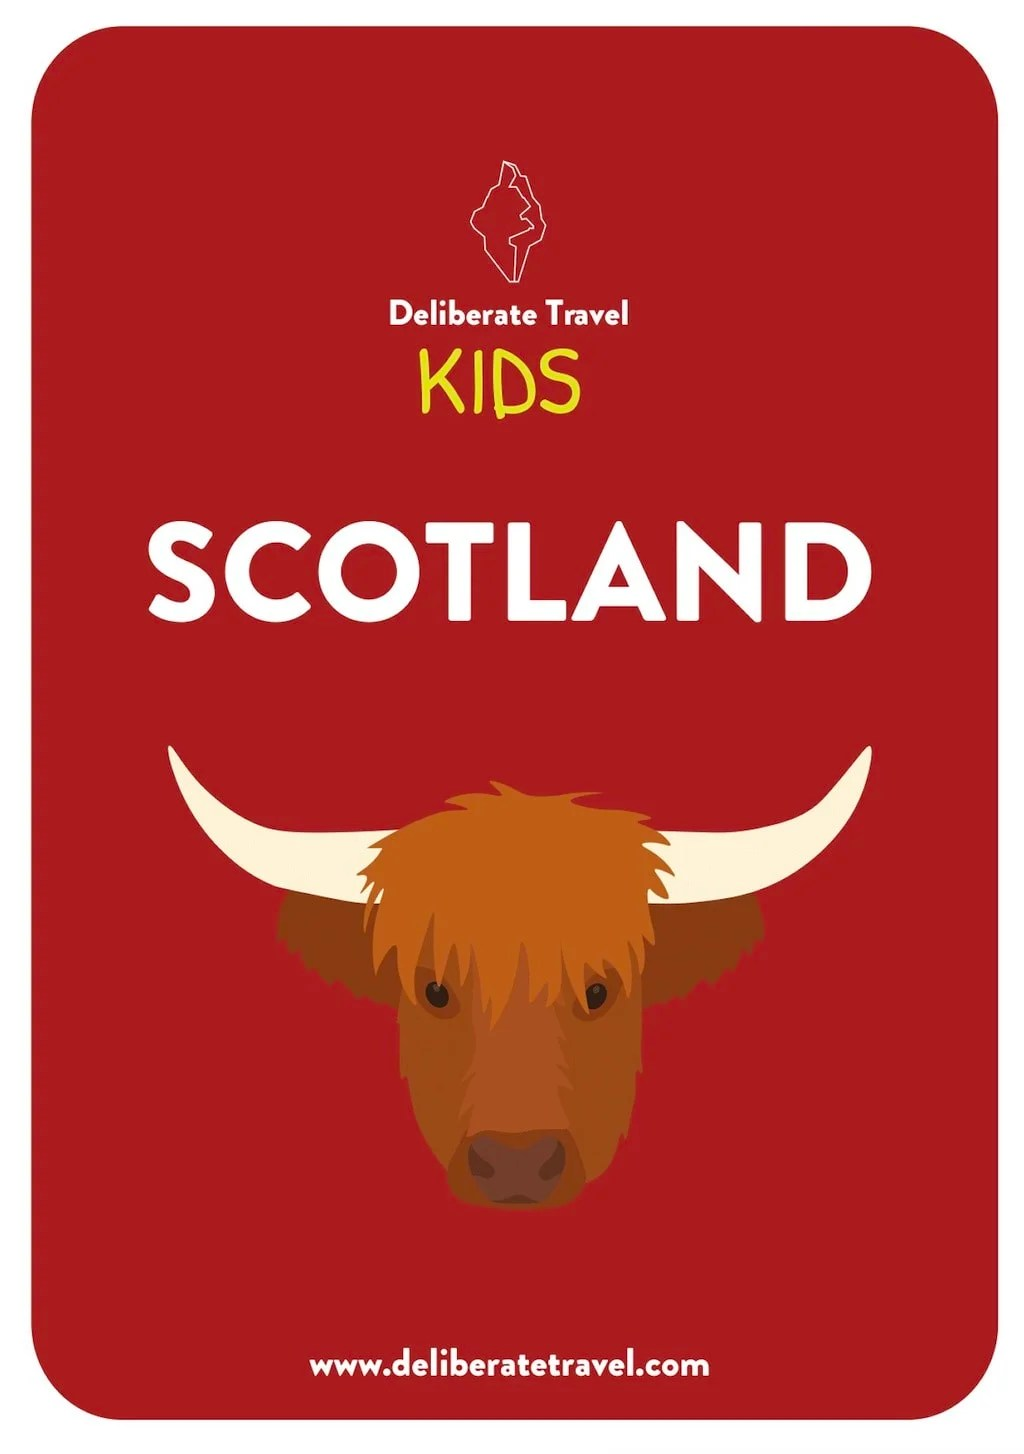 8 Scotland-themed activities to try with kids